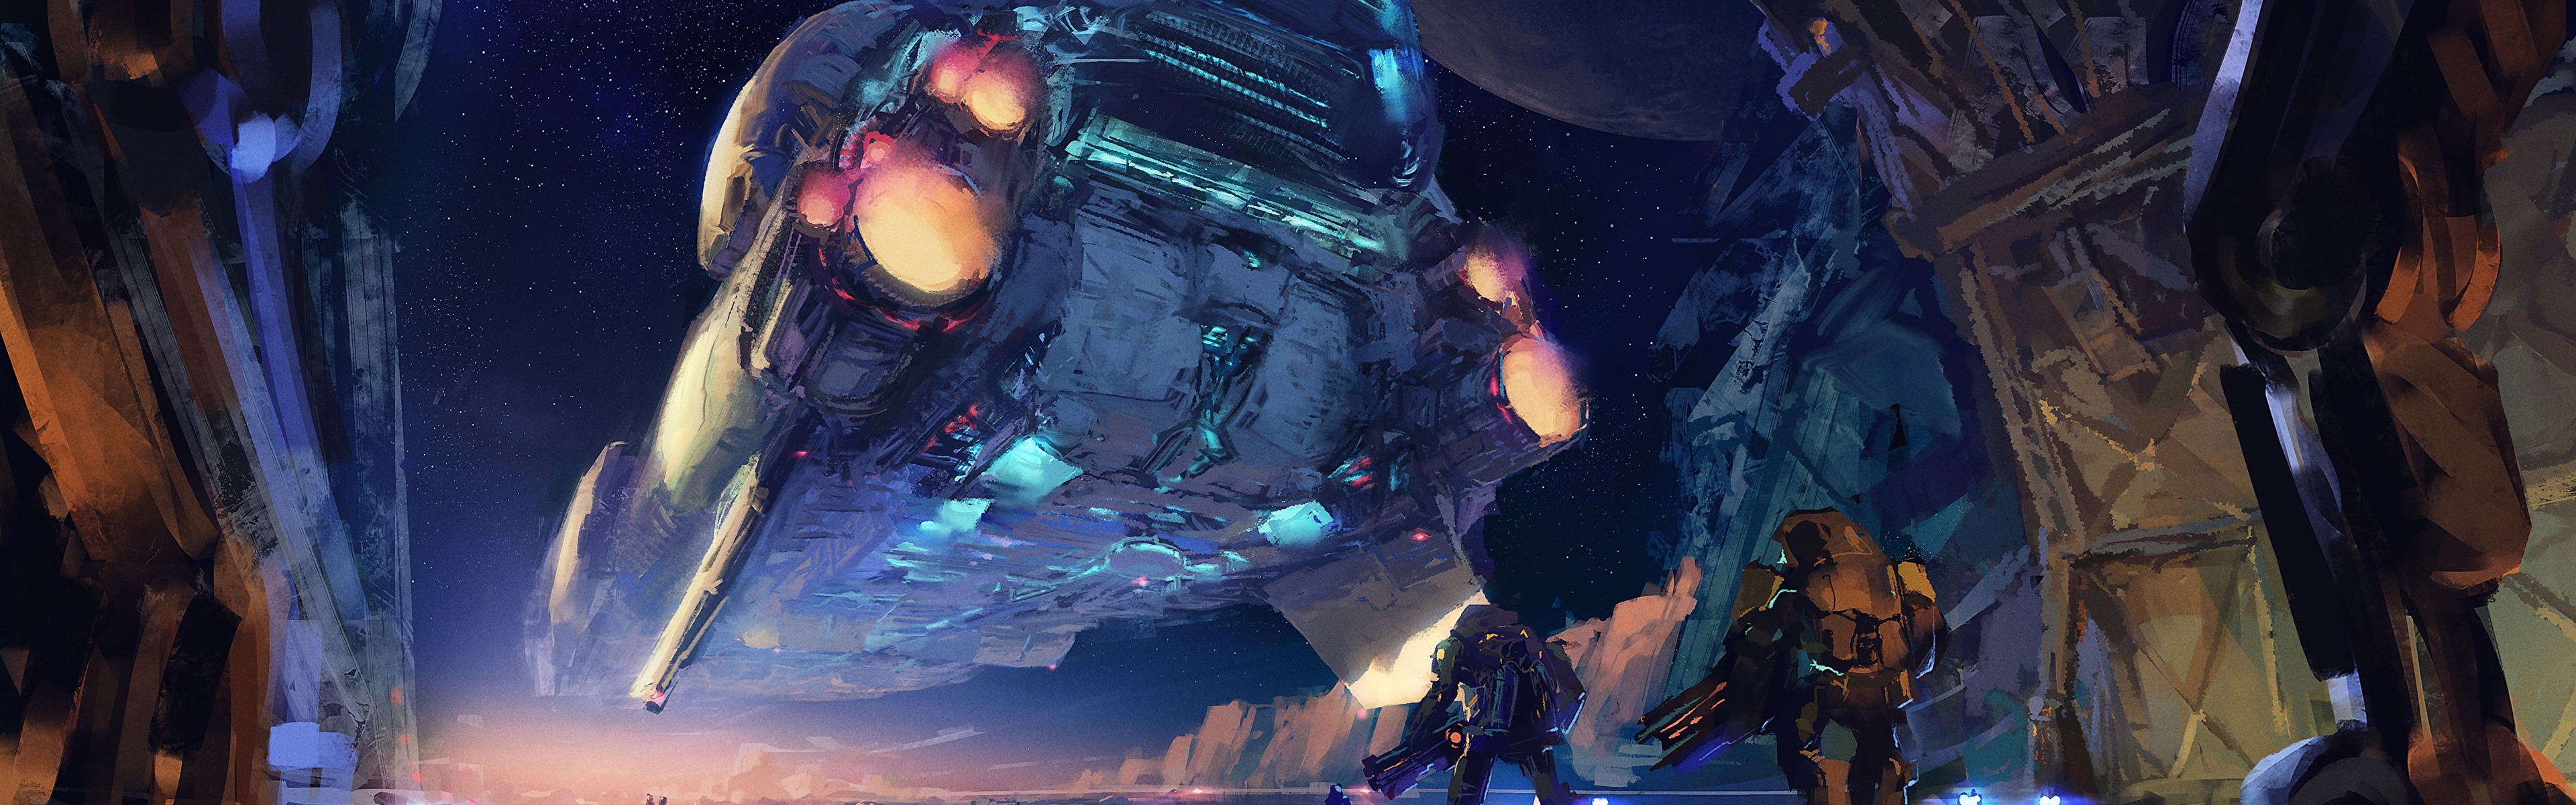 Wallpaper Art Picture Spaceship Robots Sci Fiction 3840x1200 Multi Monitor Panorama Picture Image